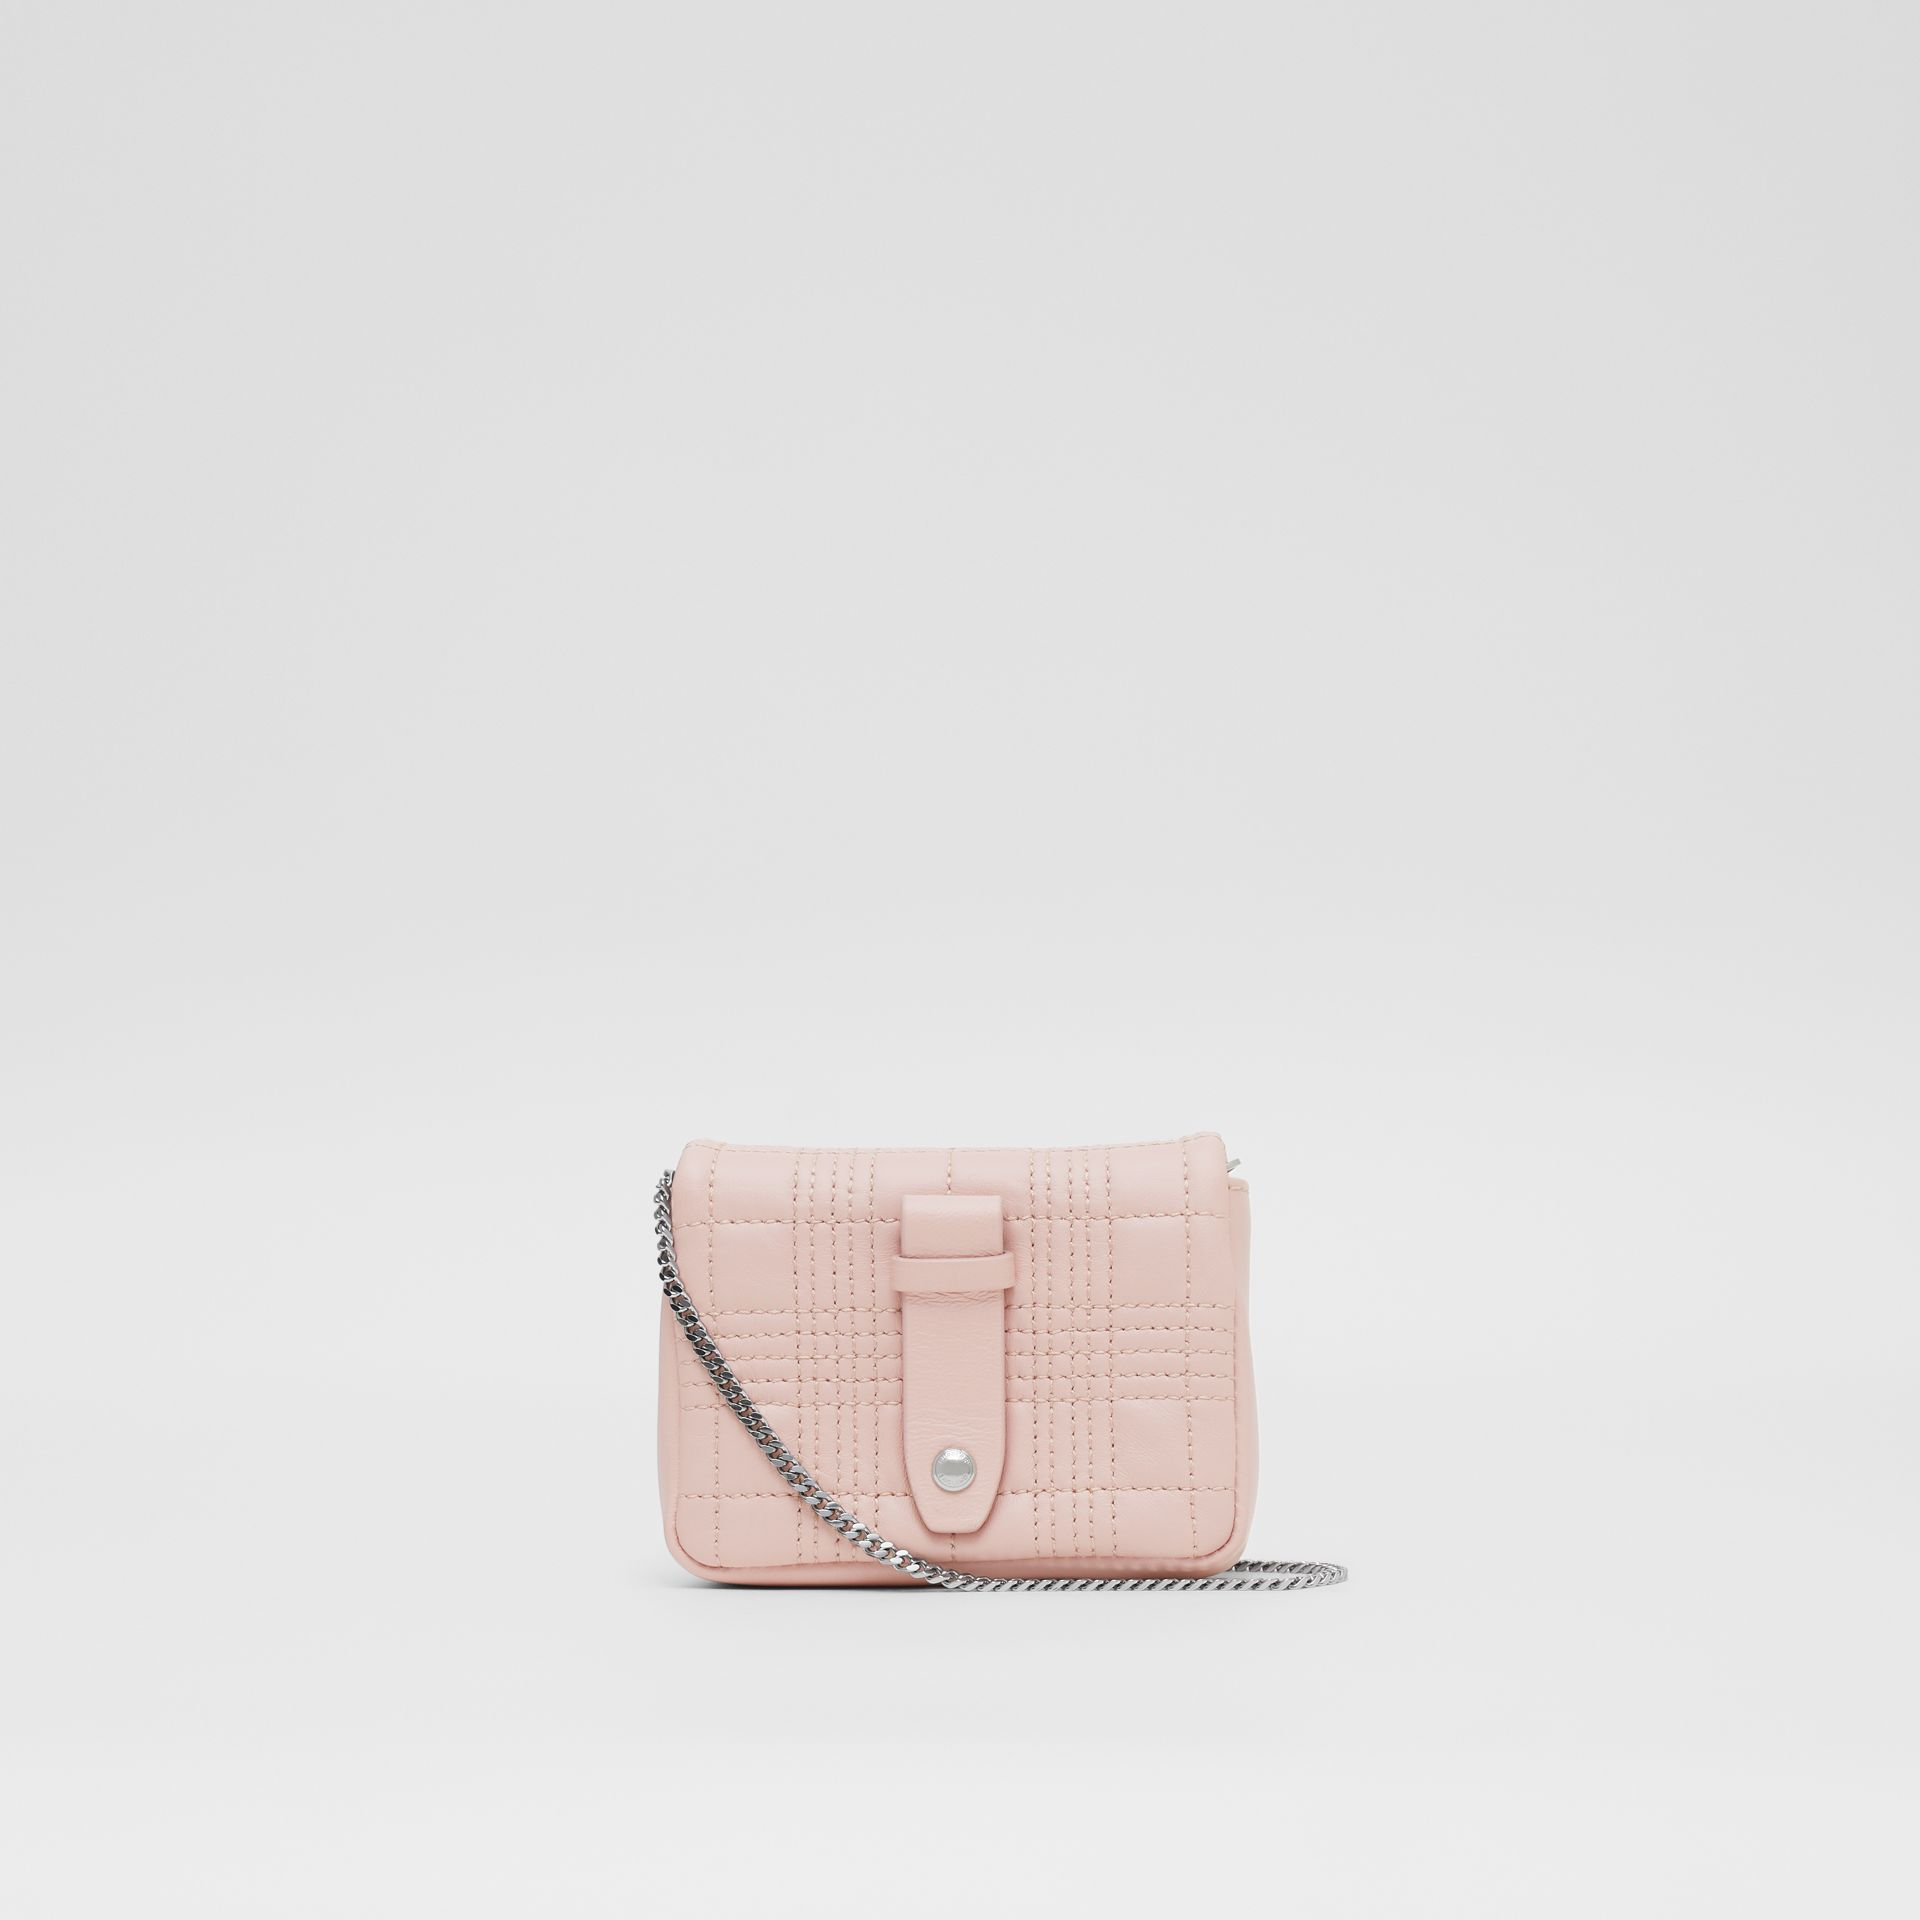 Micro Quilted Lambskin Lola Bag in Blush Pink - Women | Burberry - gallery image 7